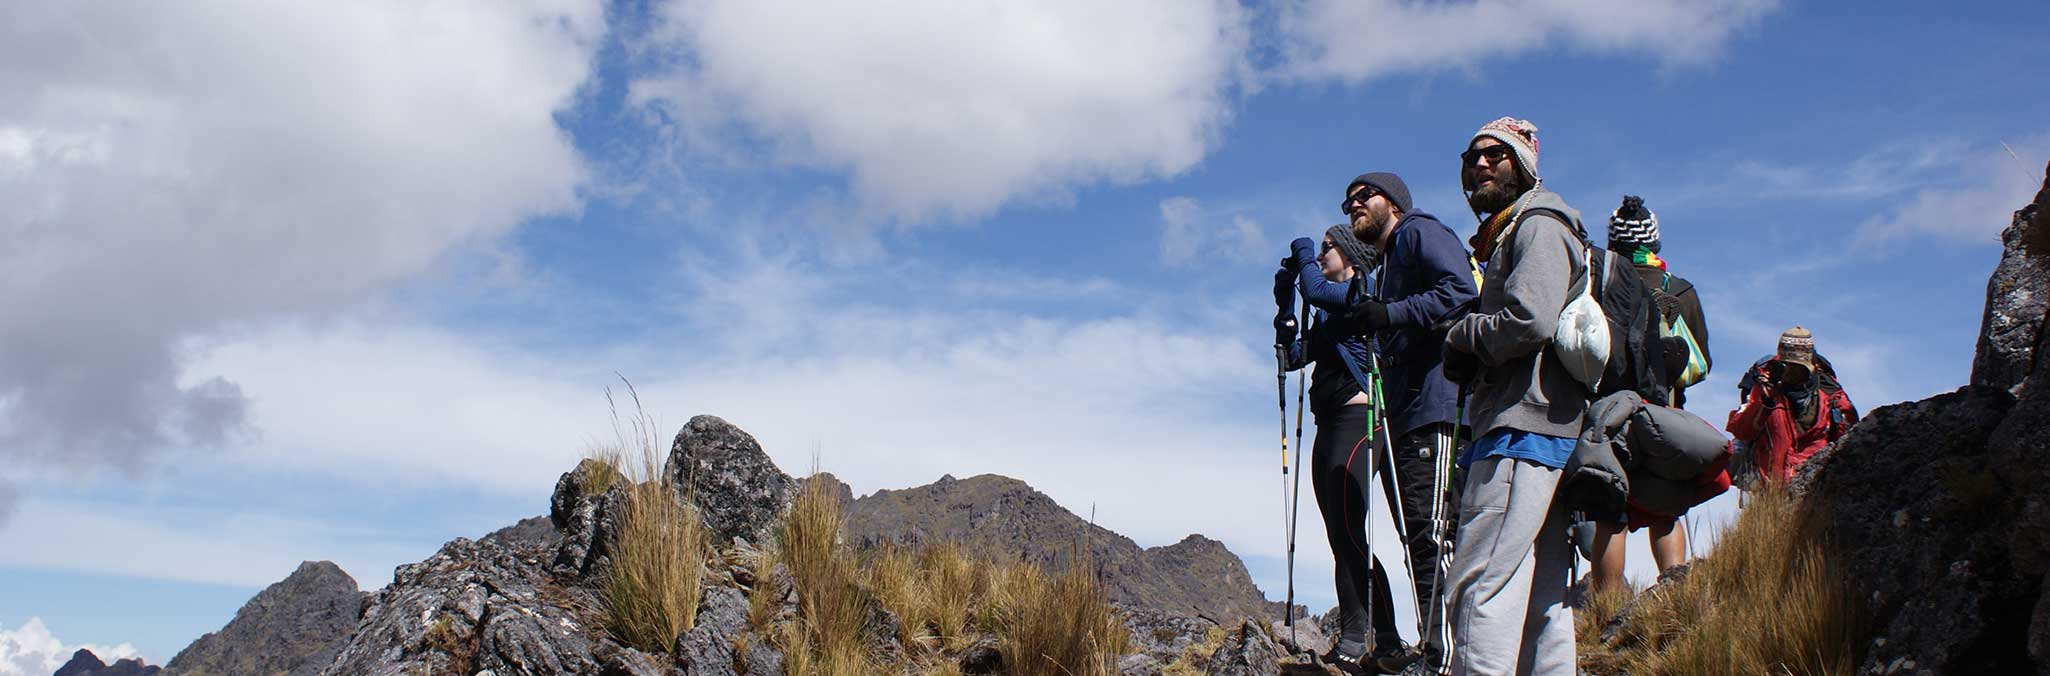 Lares Trek + Short Inca Trail to Machu Picchu in 5 days